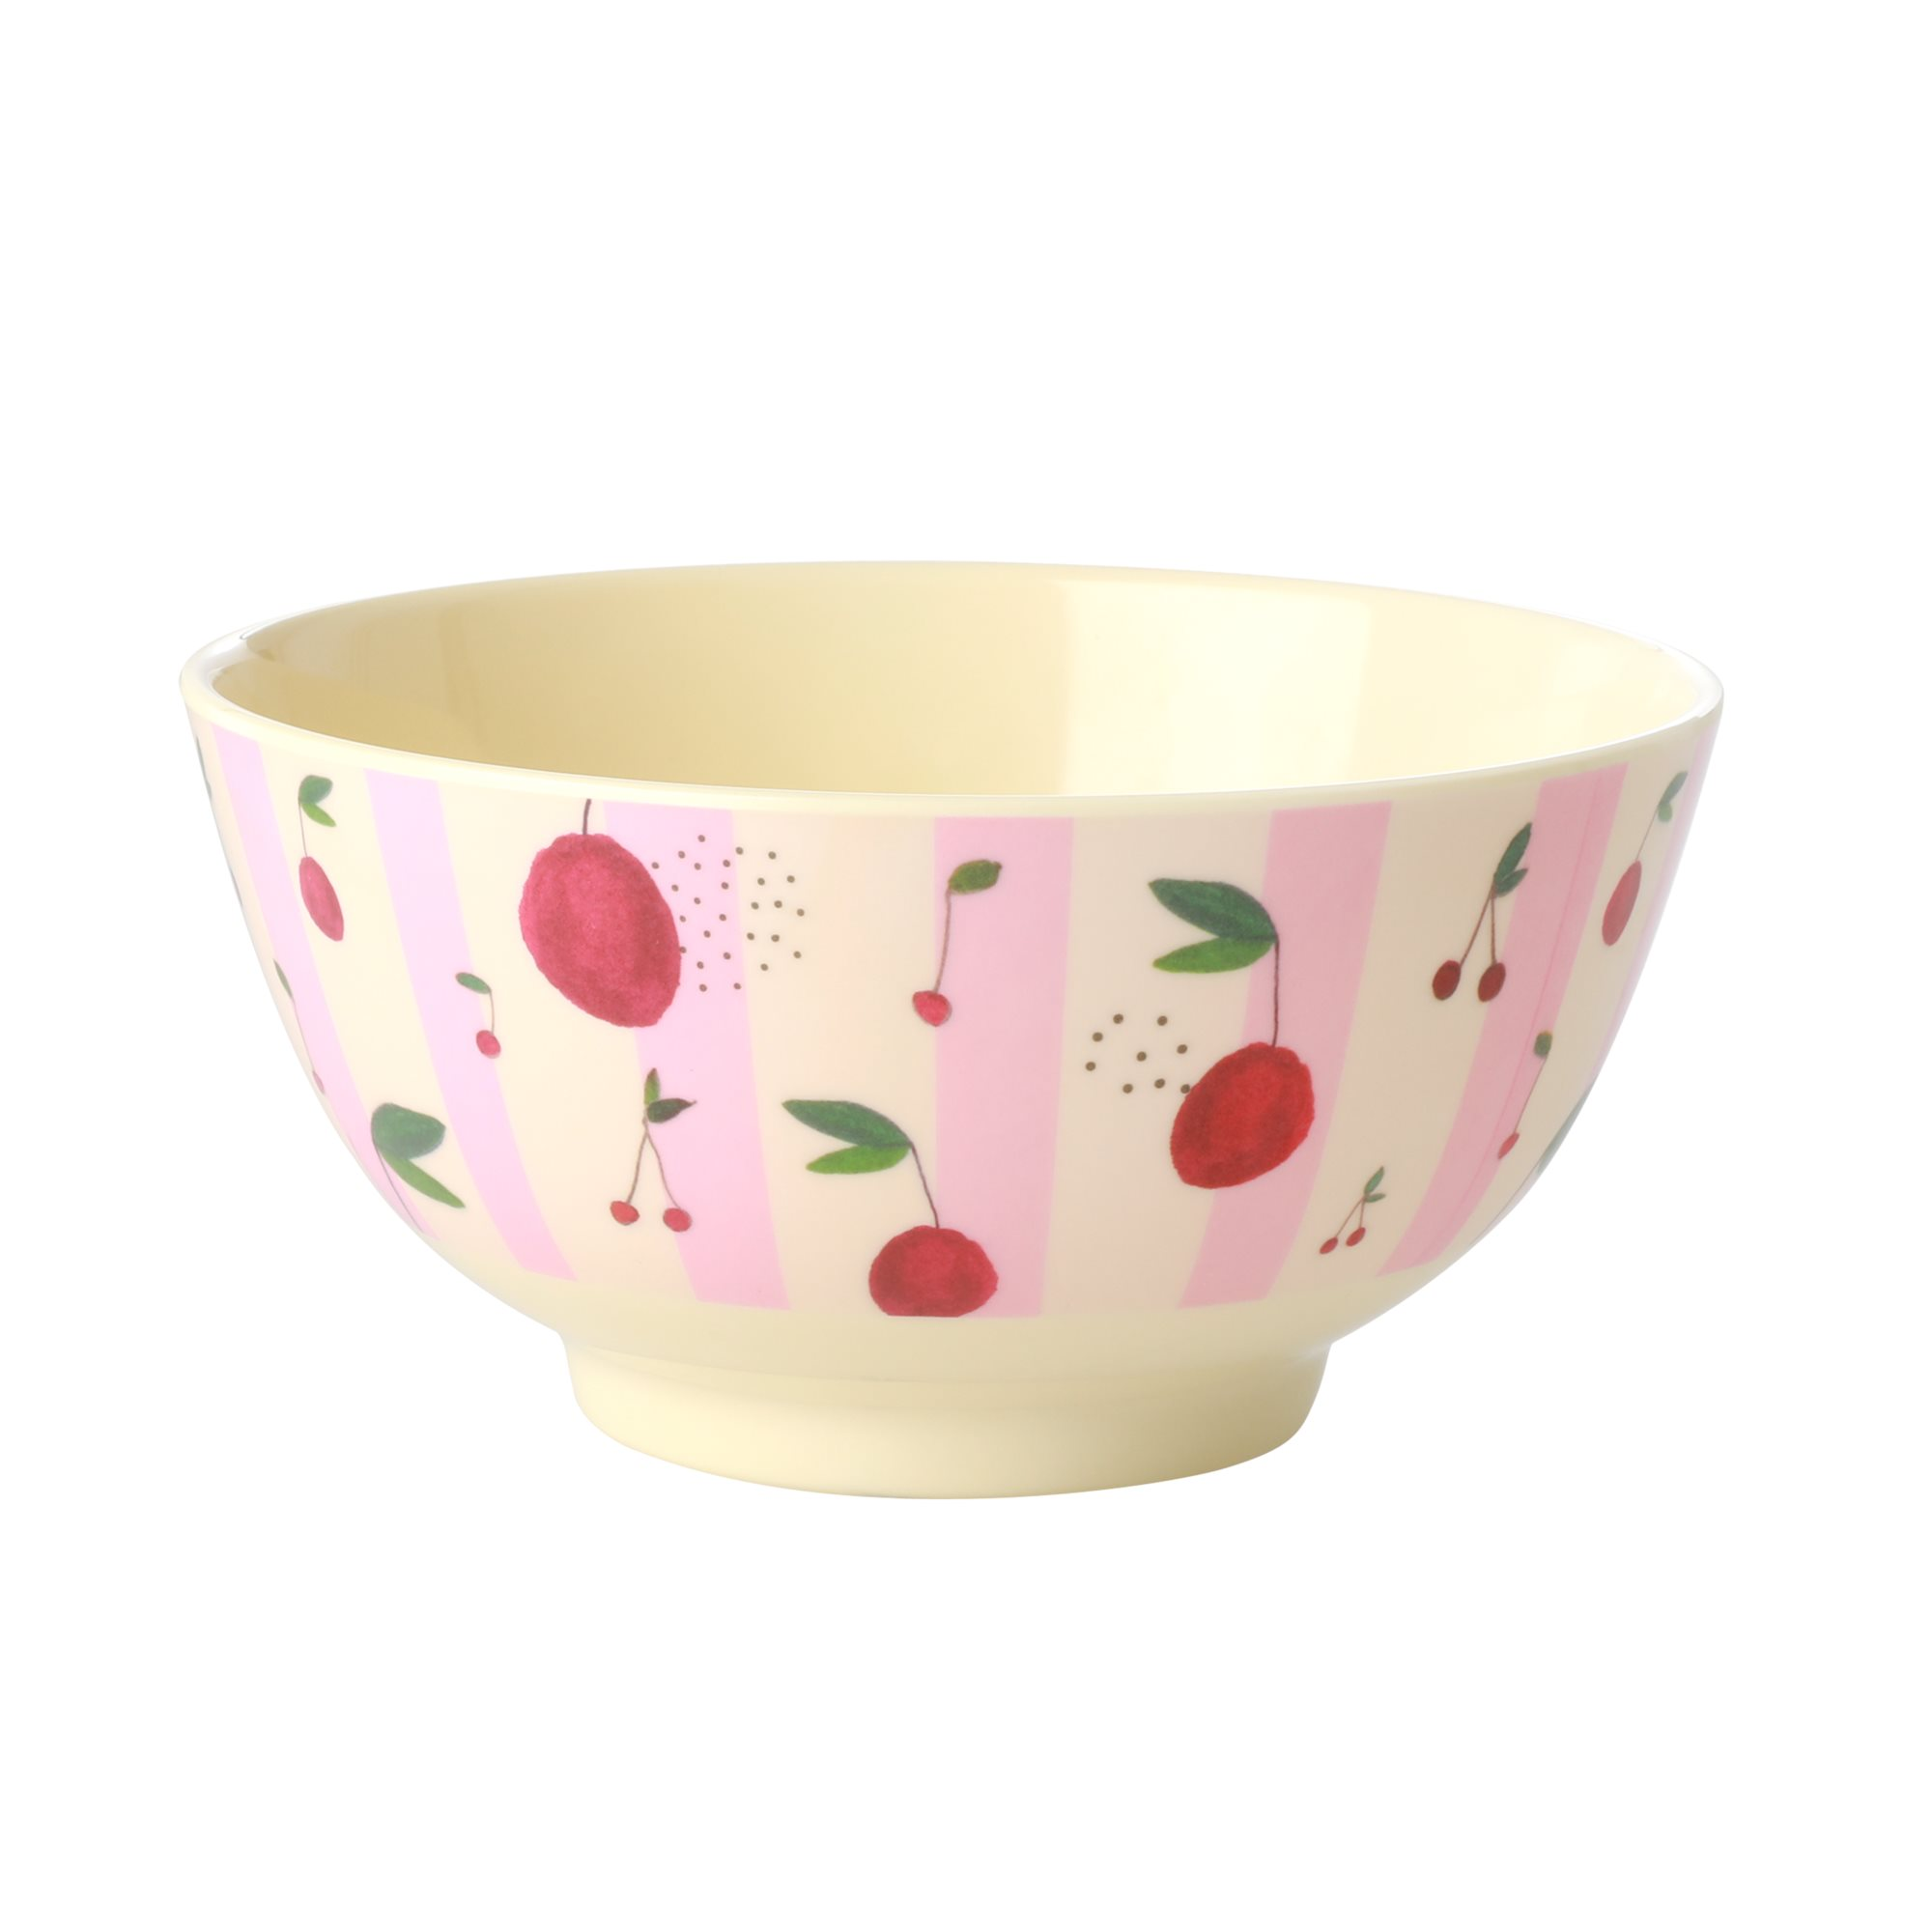 Medium Melamine Bowl - Cherry Print - rice